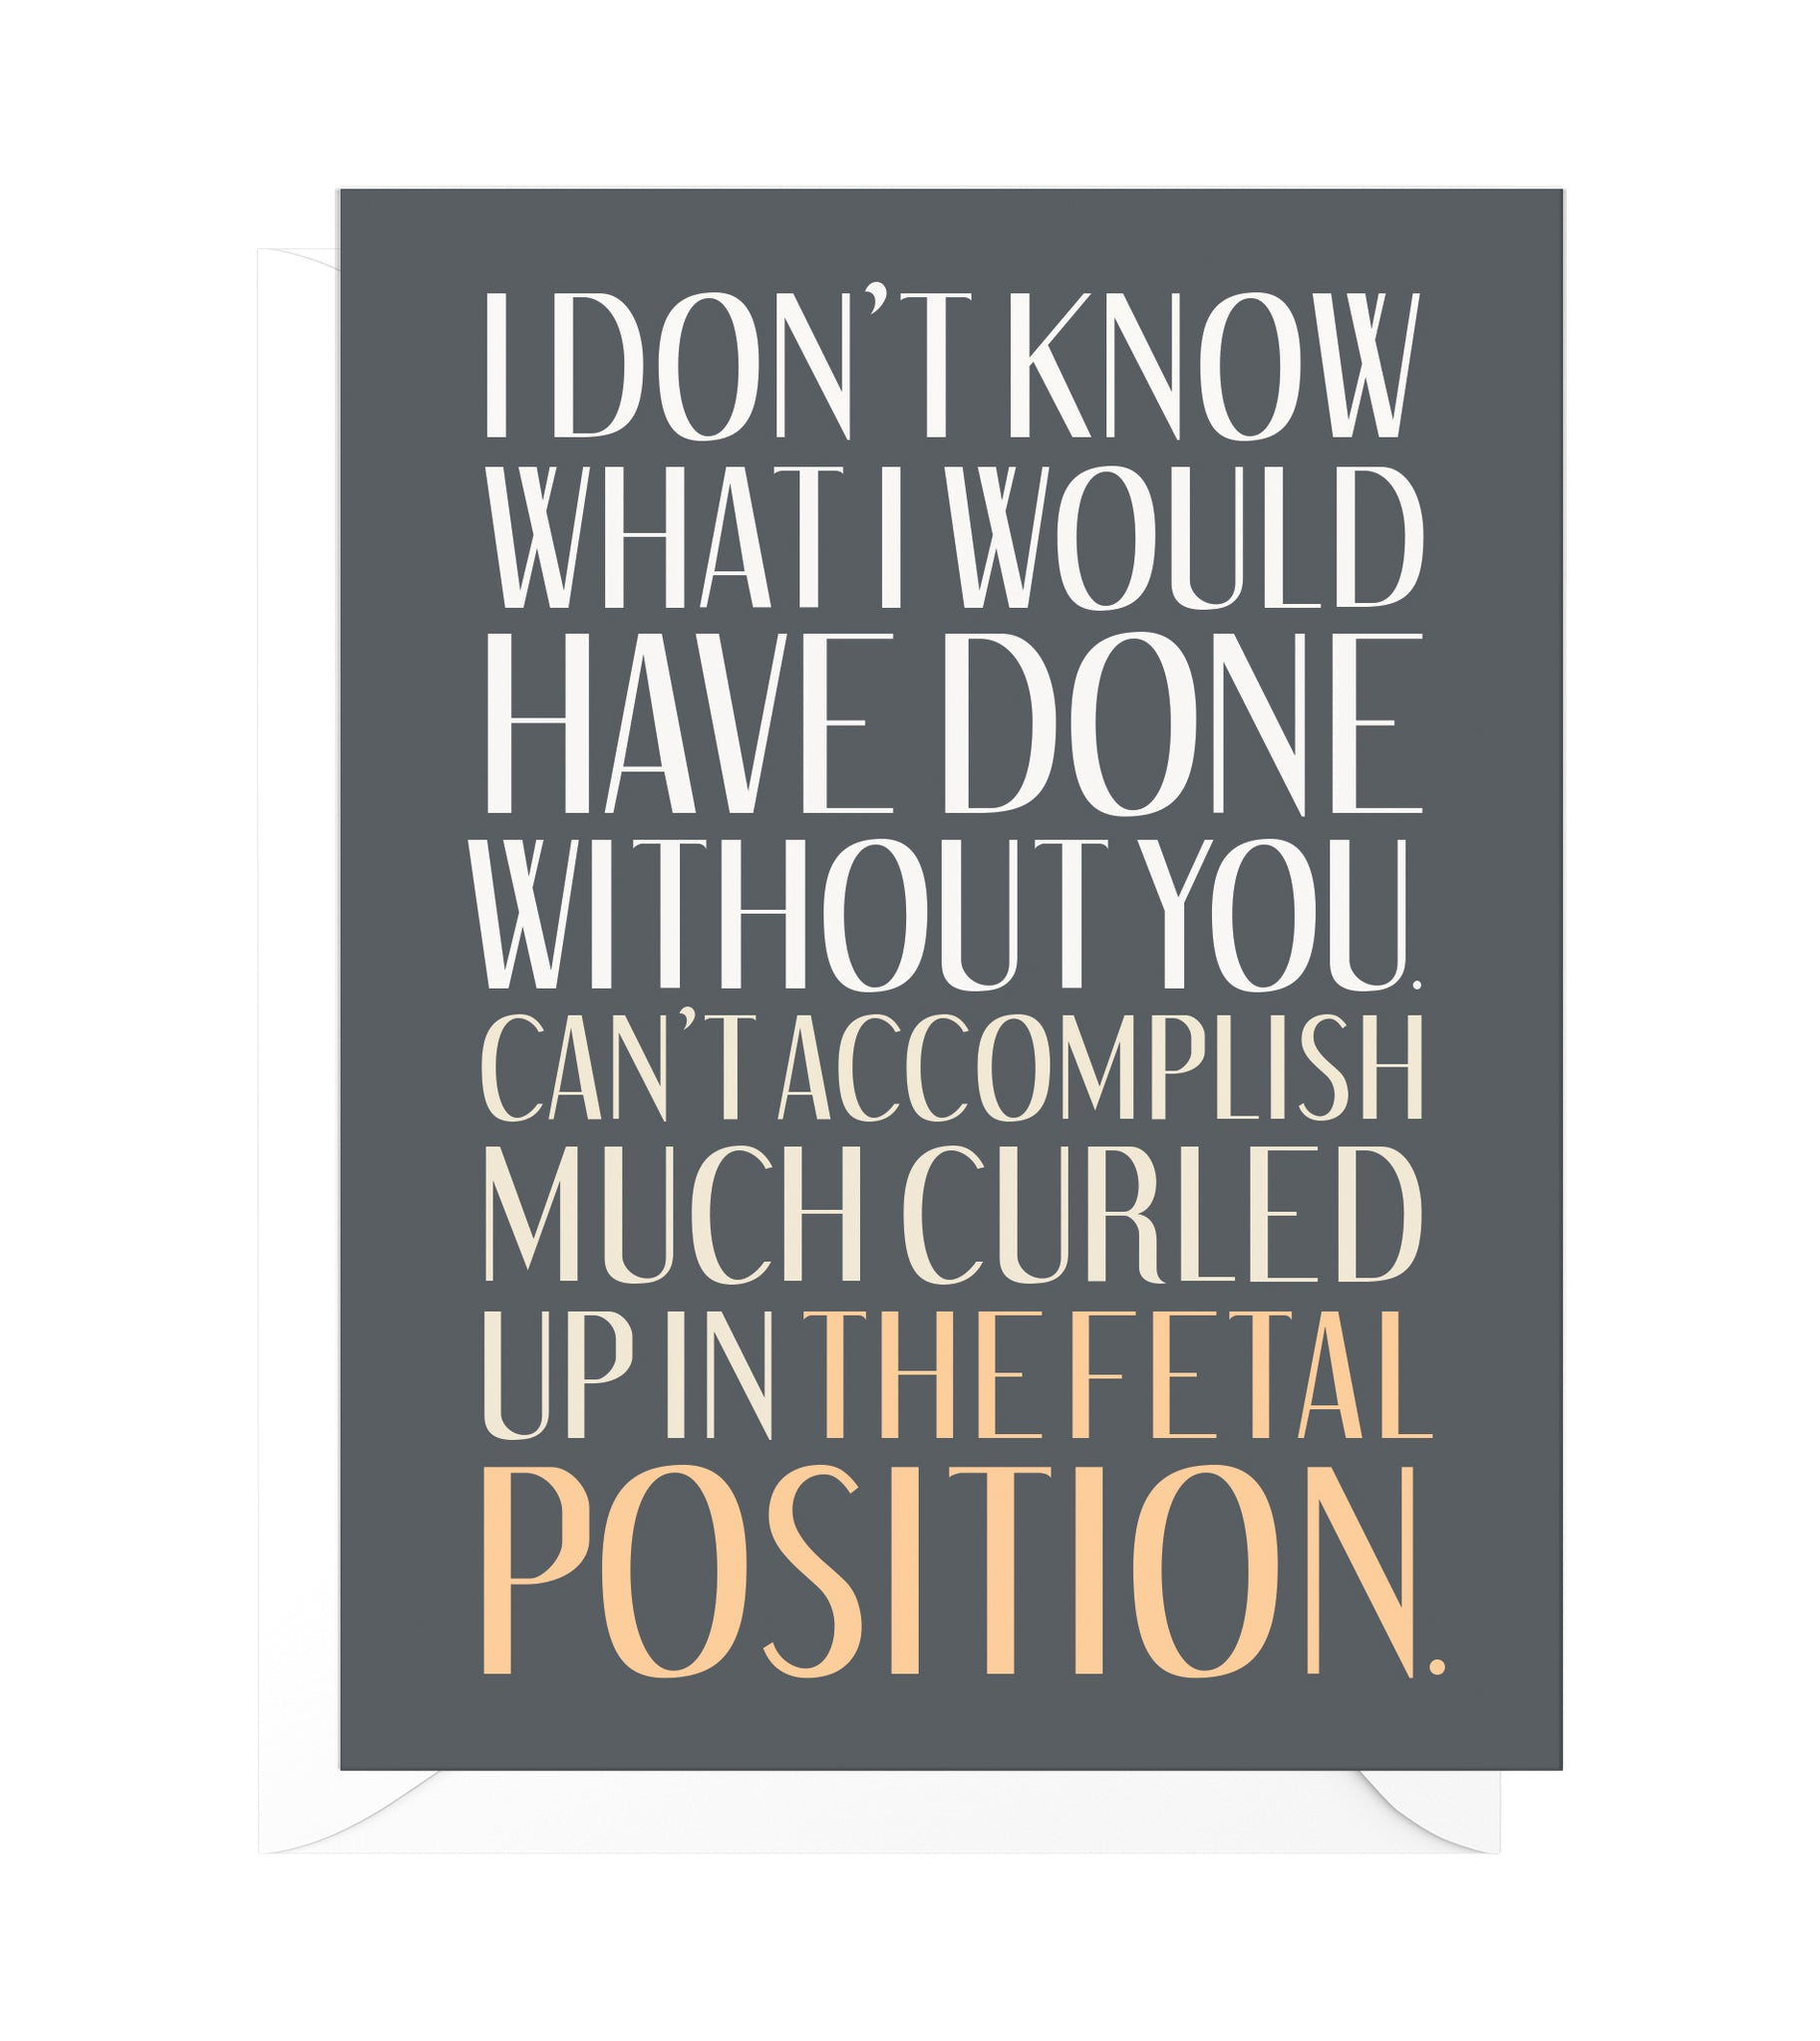 Fetal Position Funny Thank You Card